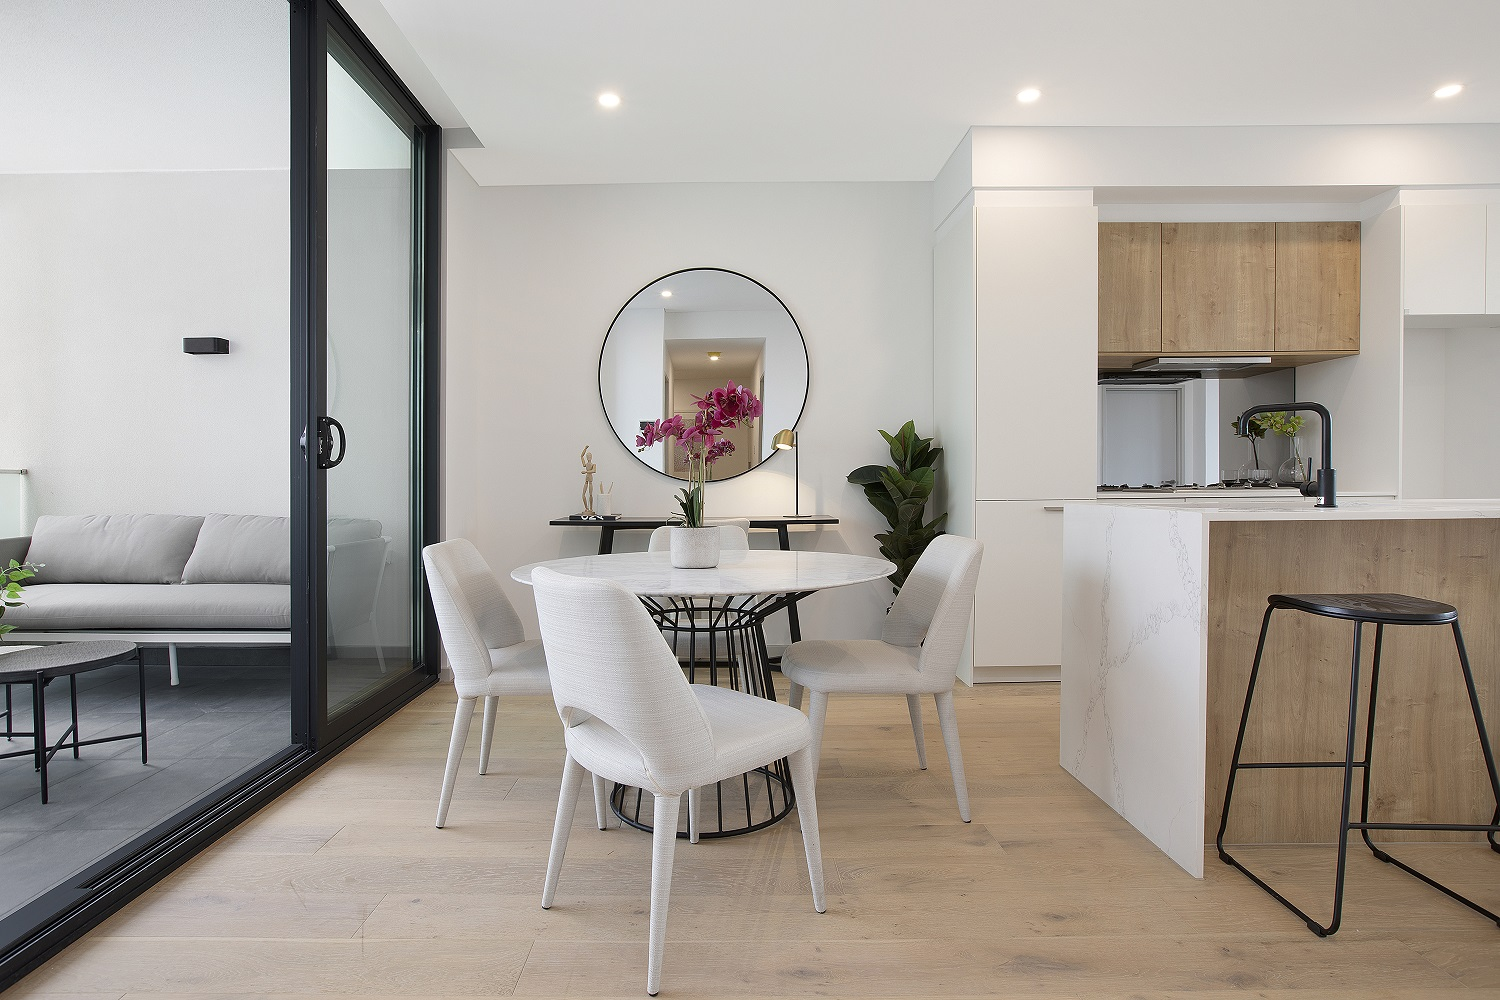 Tips for buying a 1 or 2 bedroom investment property